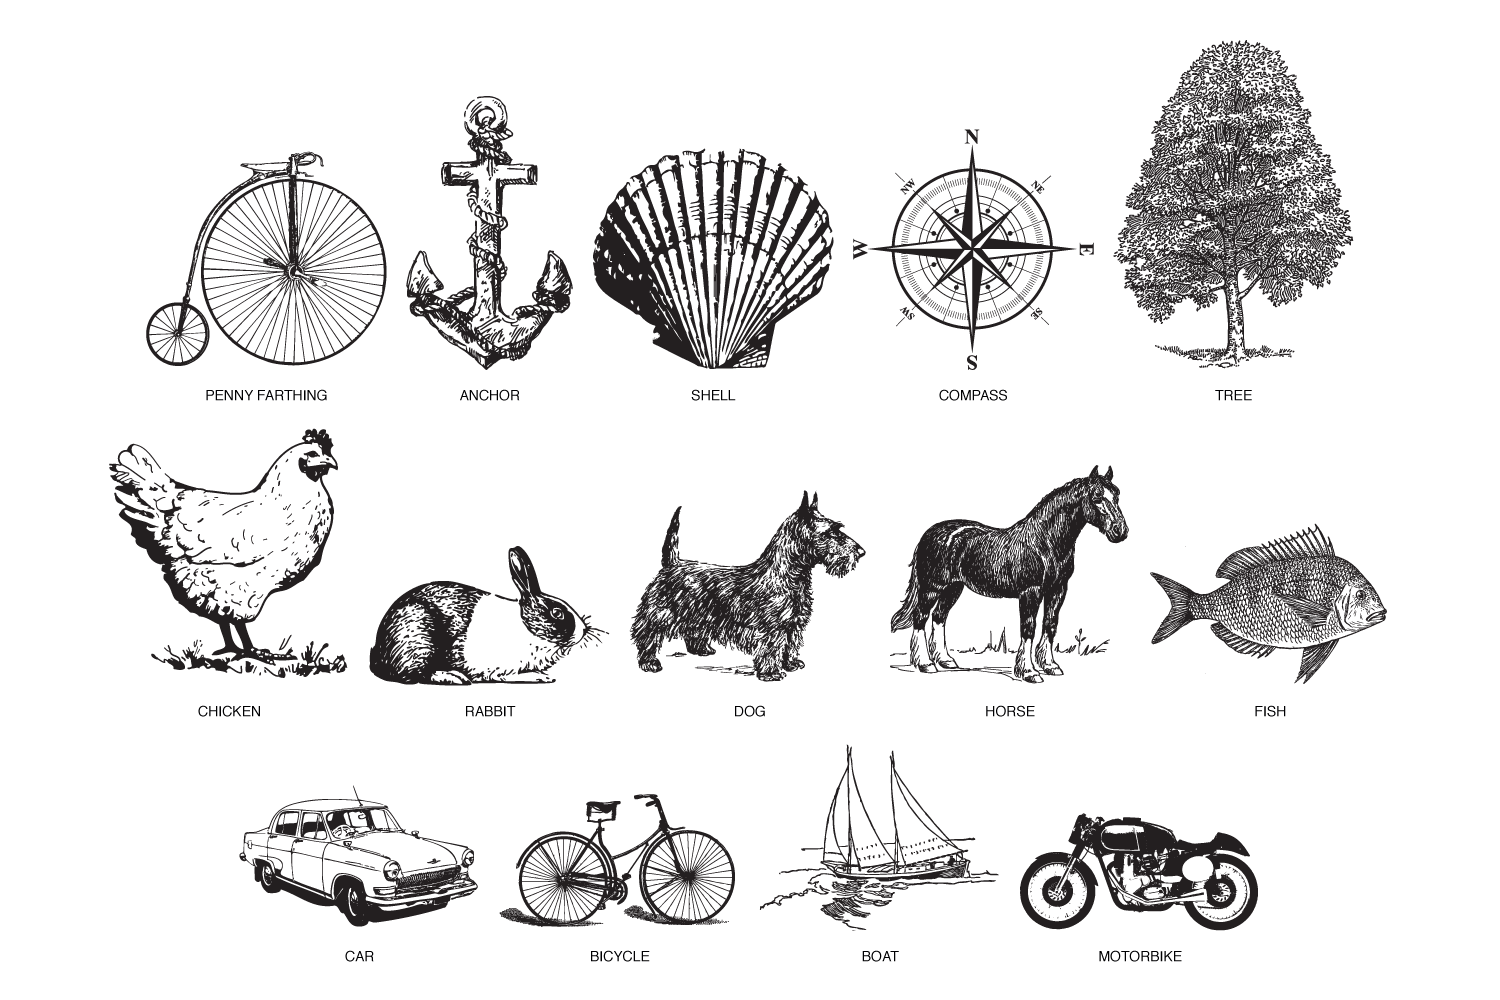 Pocket notebook with choice of gold foil picture from Bookshell, penny farthing, anchor, shell, compass, tree, chicken, rabbit, dog, horse, fish, car, bicycle, boat, motorbike